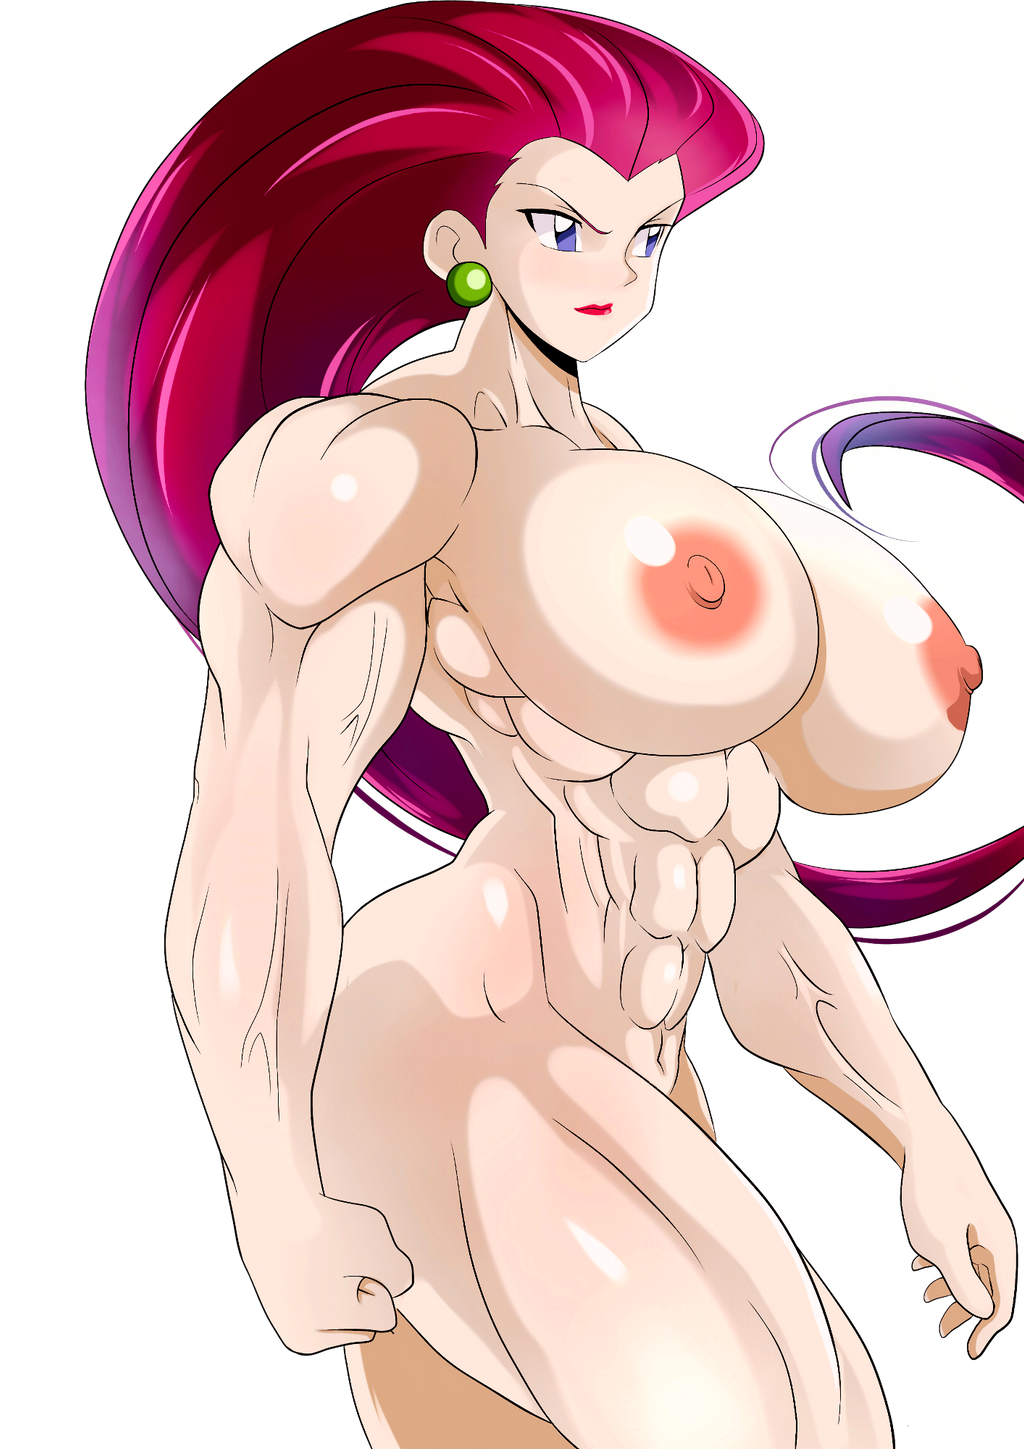 Will Sexy pokemon jessie nude speaking, would